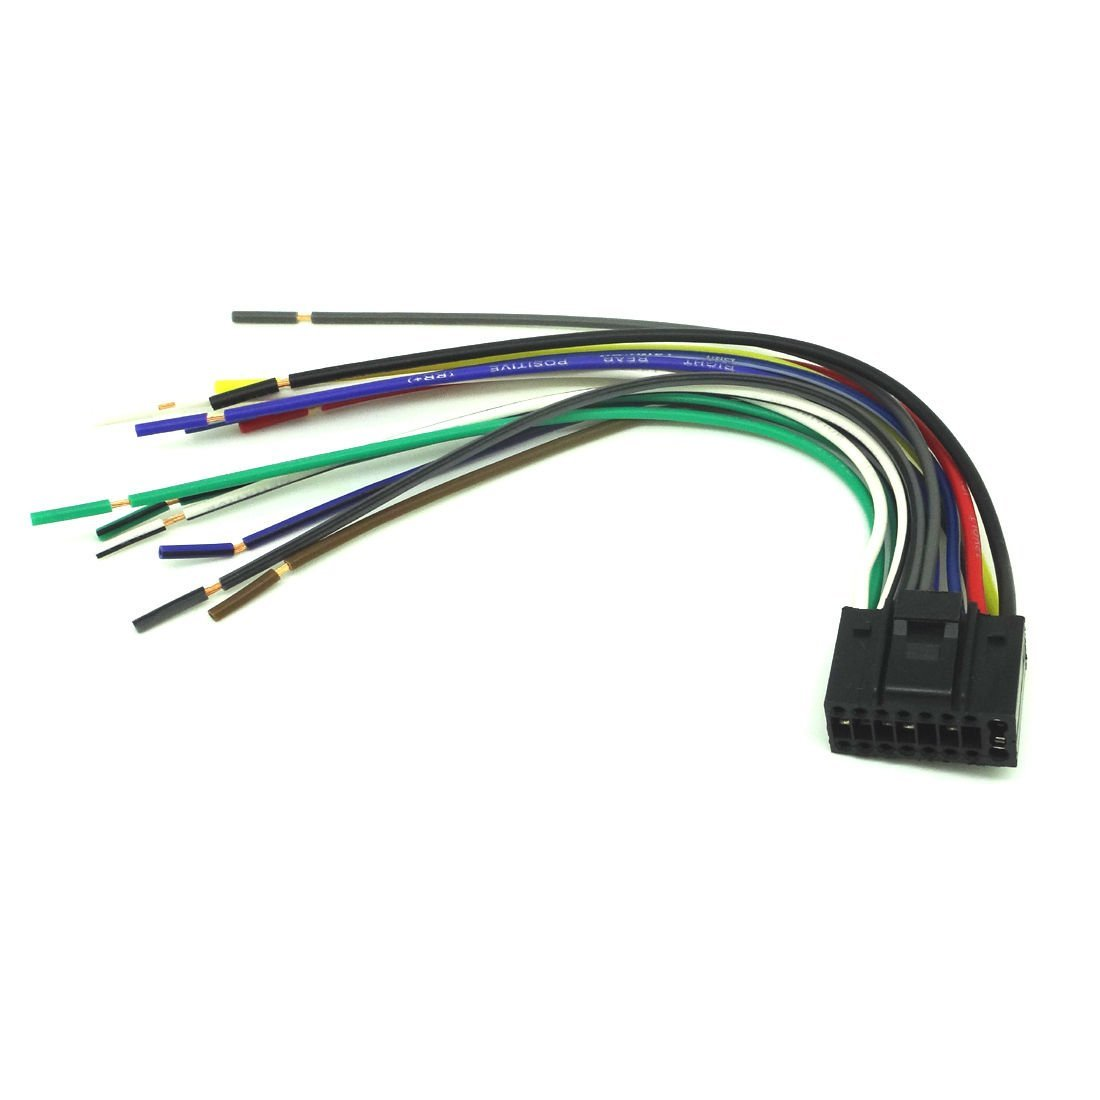 hight resolution of get quotations conpus 16 pin radio car audio stereo wire harness for kenwood kdc mp242 player